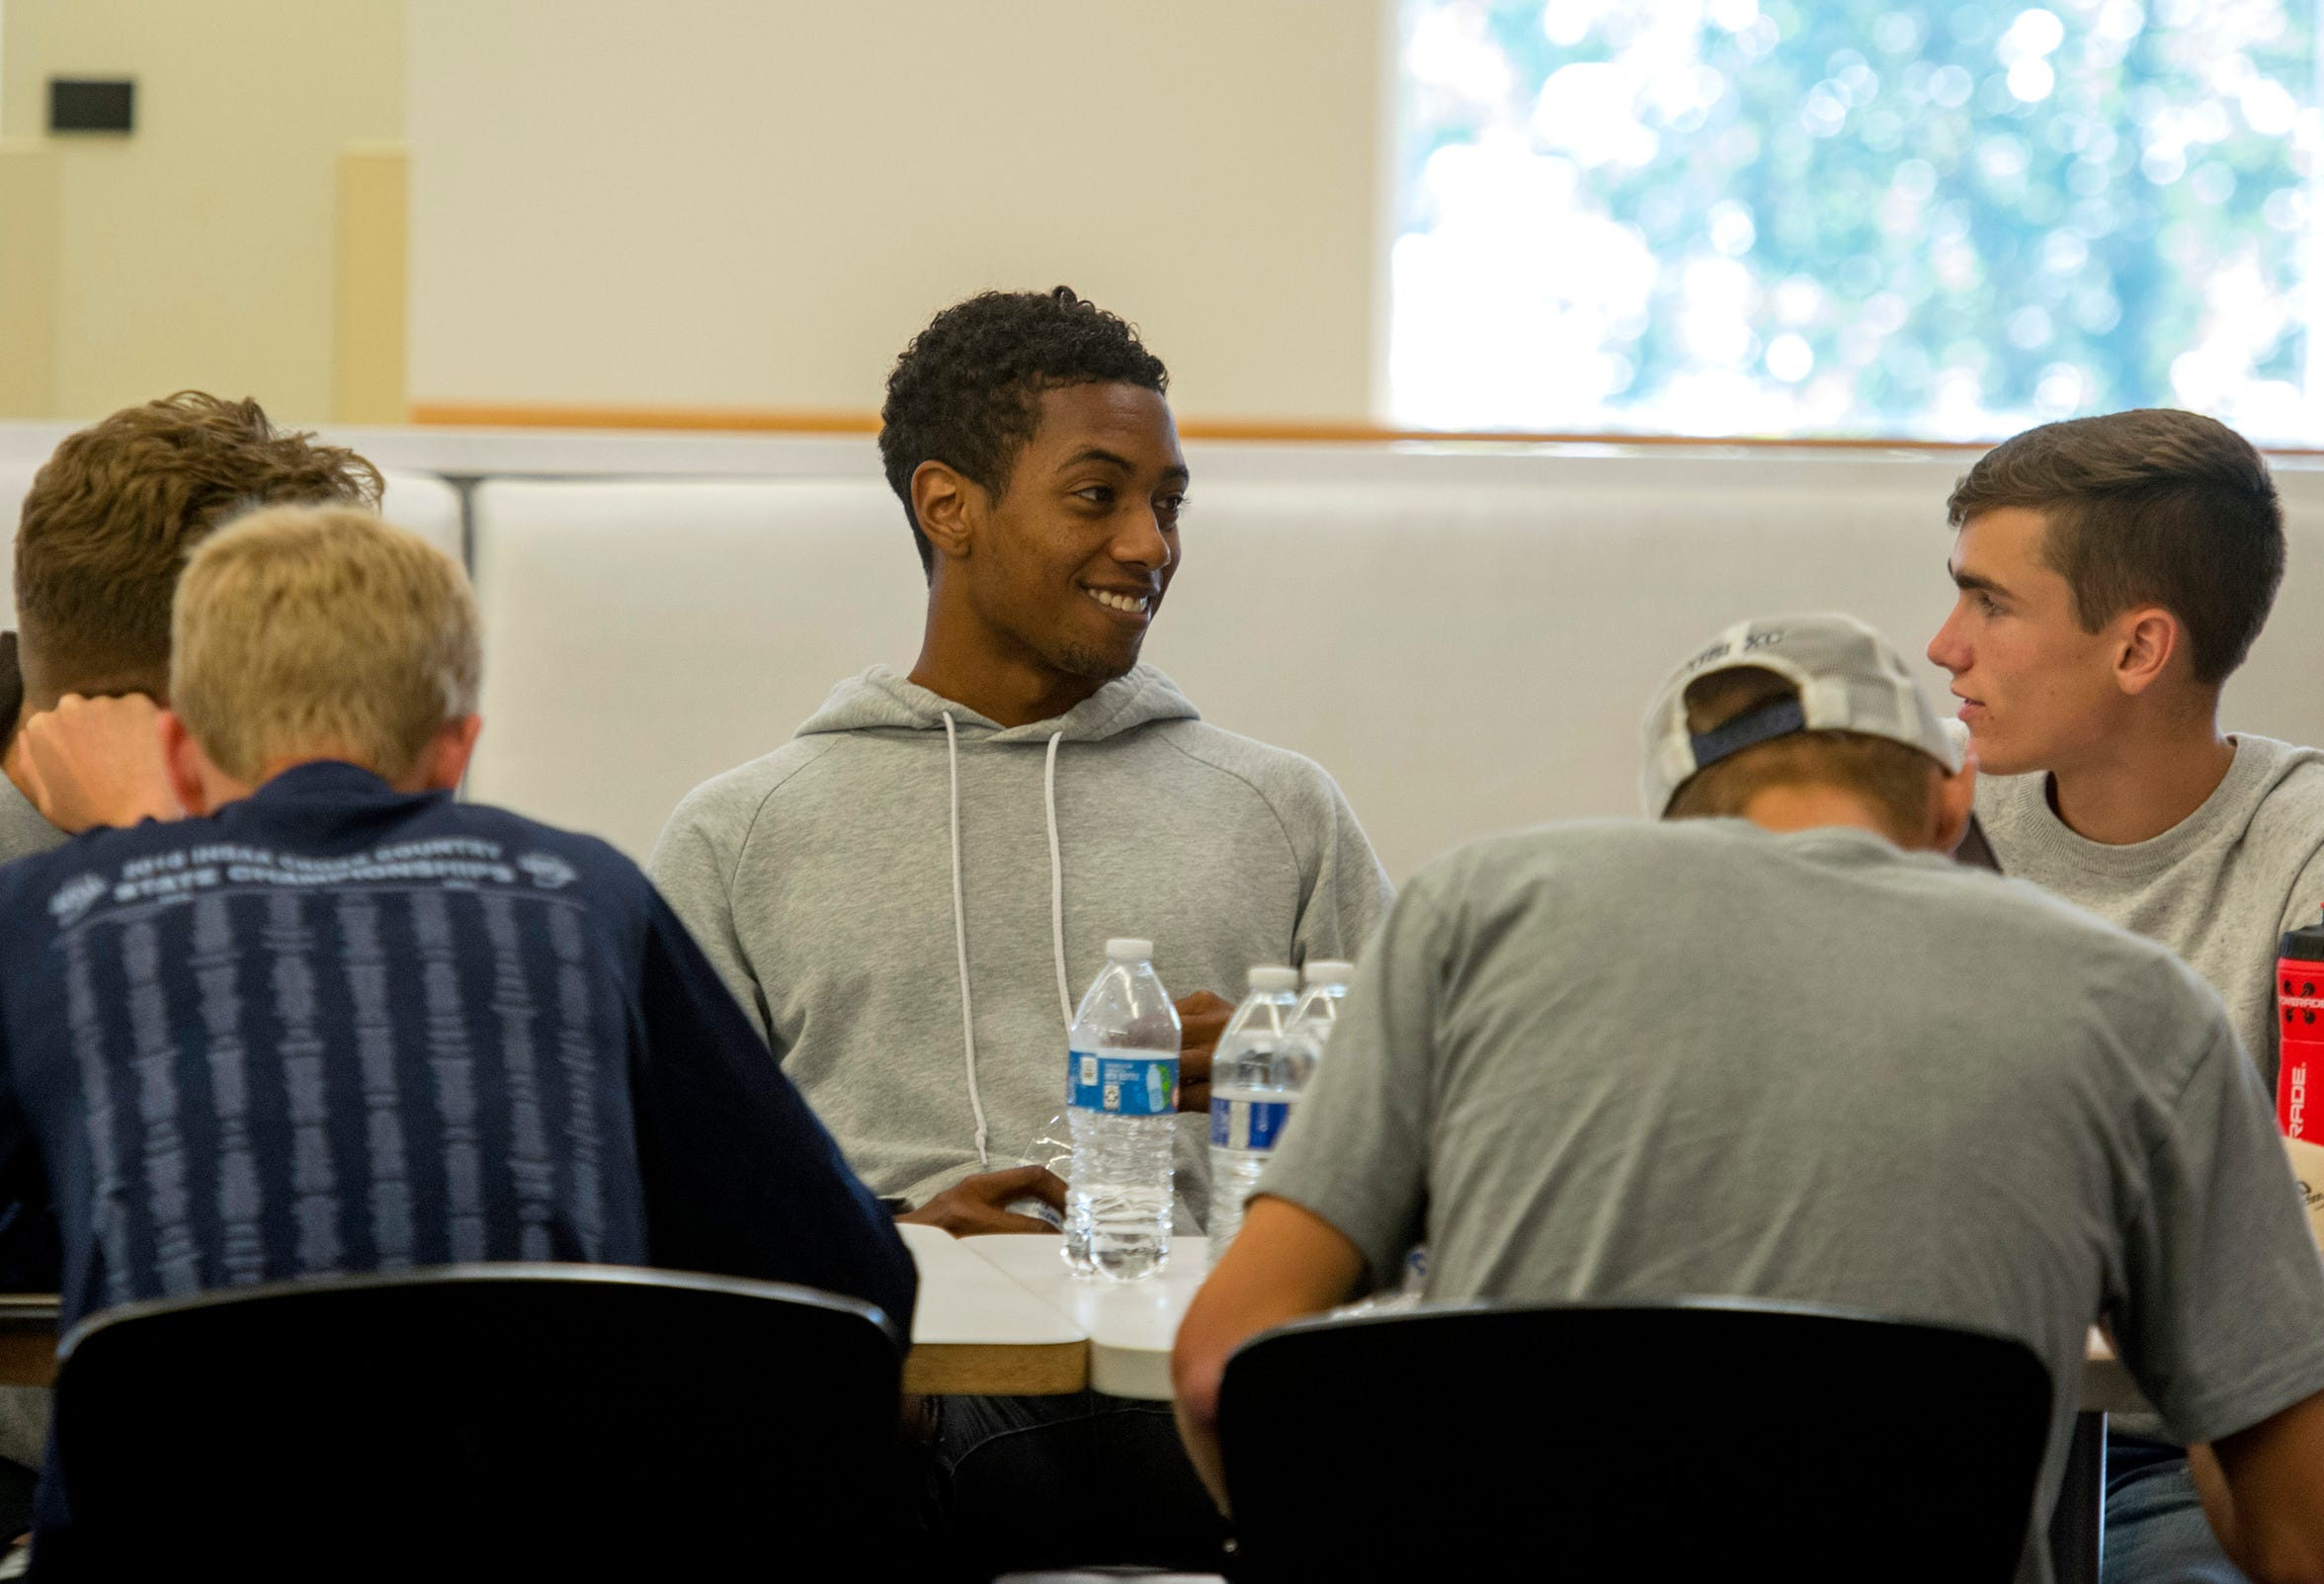 University of Southern Indiana Cross Country runner Darin Lawrence eats lunch with his teammates in the Loft on USI's campus Tuesday afternoon, Oct. 23, 2019.